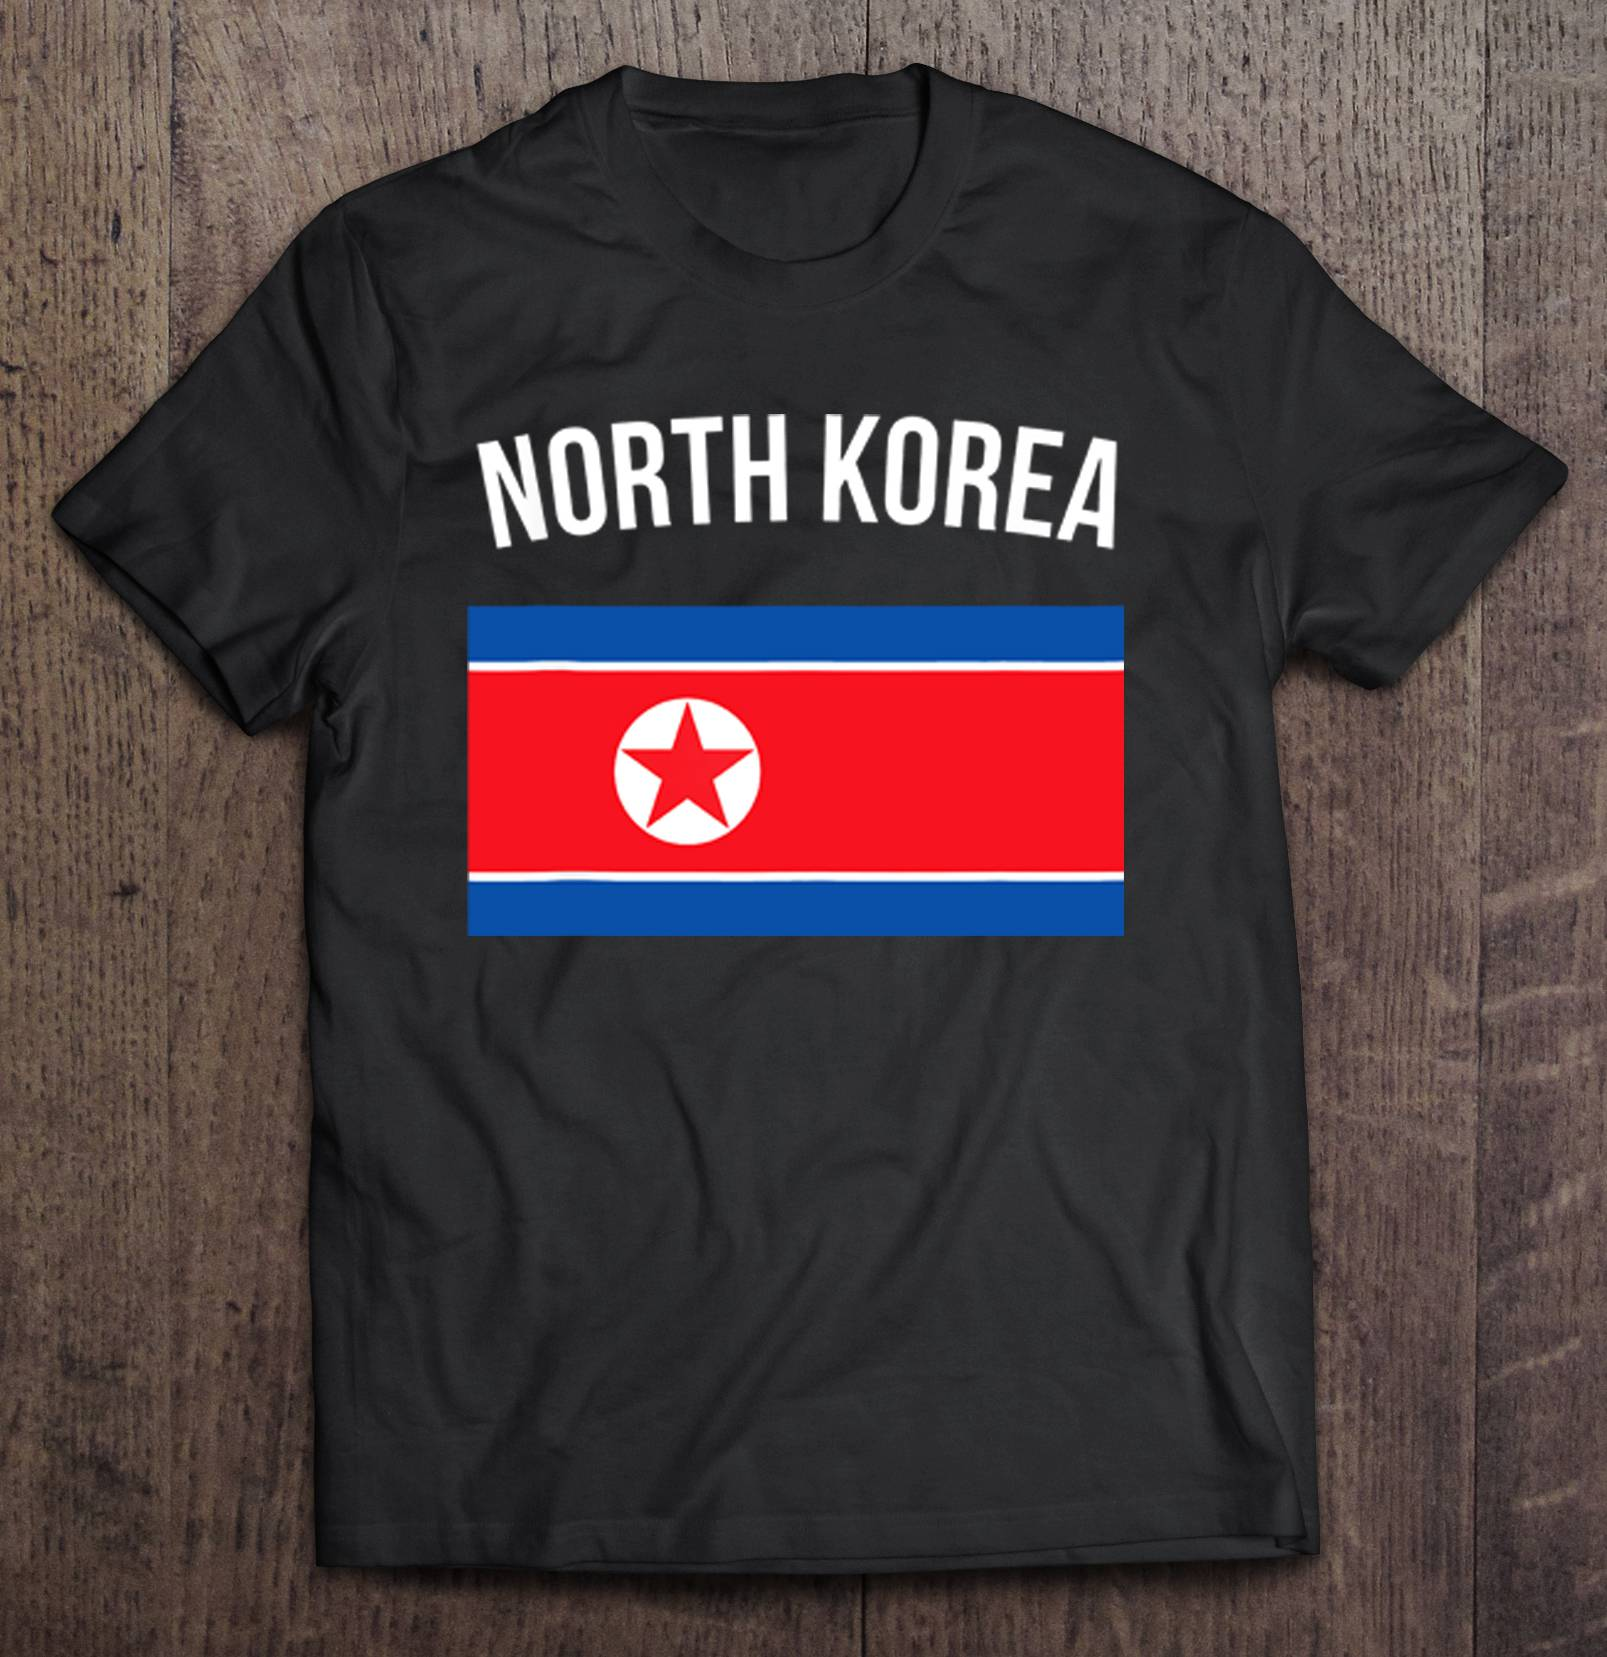 North Korea Flag Of North Korea T-Shirts image